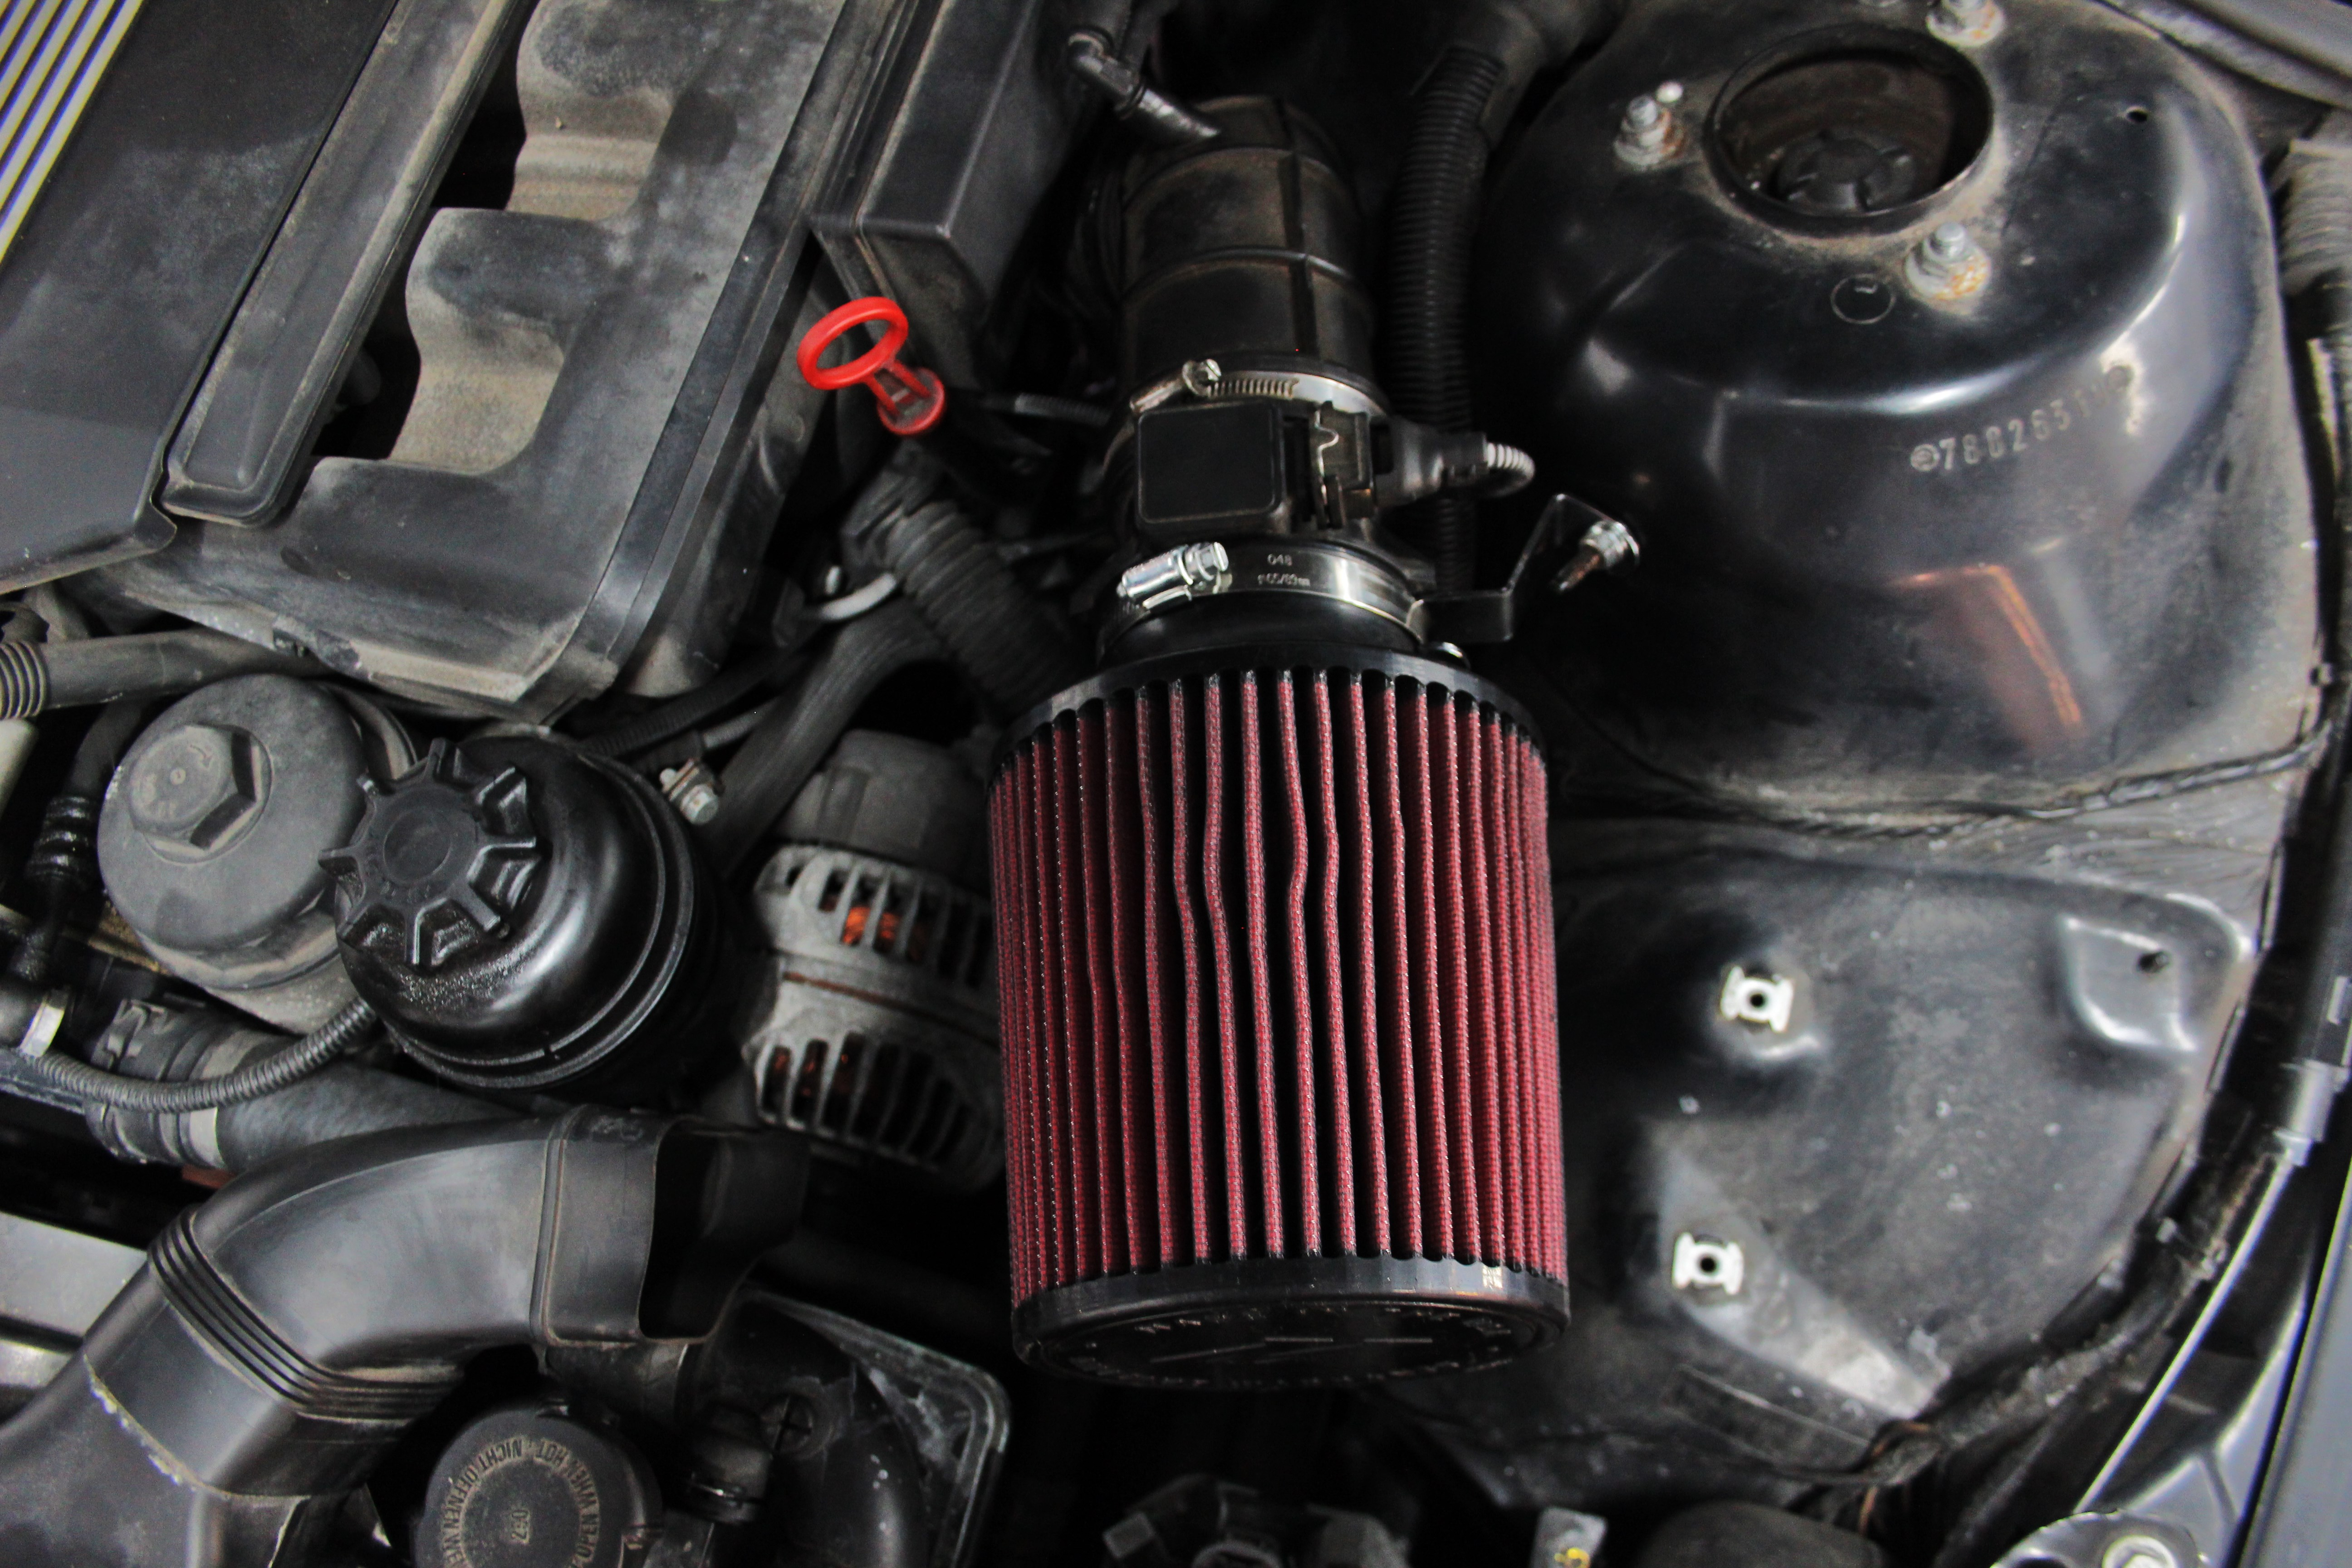 Bmw E46 3 Series Intake System Rd Part 1 Initial Design 318ti Engine Diagram Mishimoto Cone Filter Installed